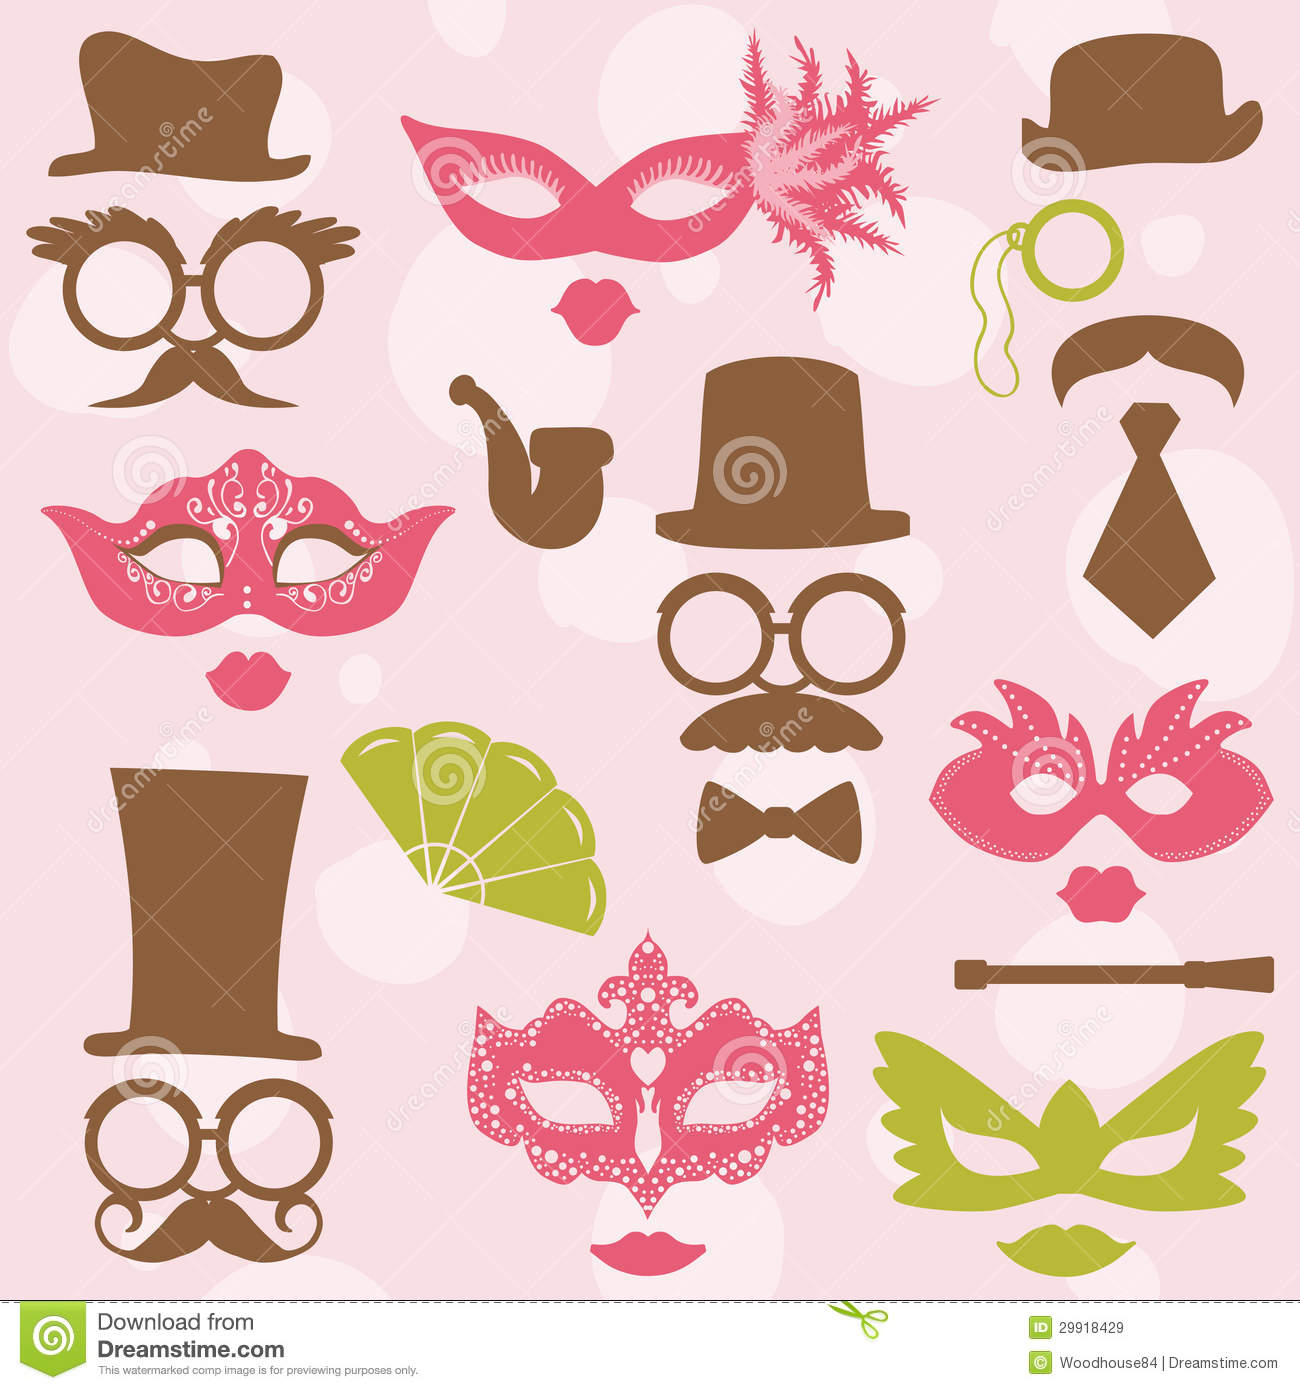 Retro Party set - Glasses, hats, lips, mustaches, masks - for design ...